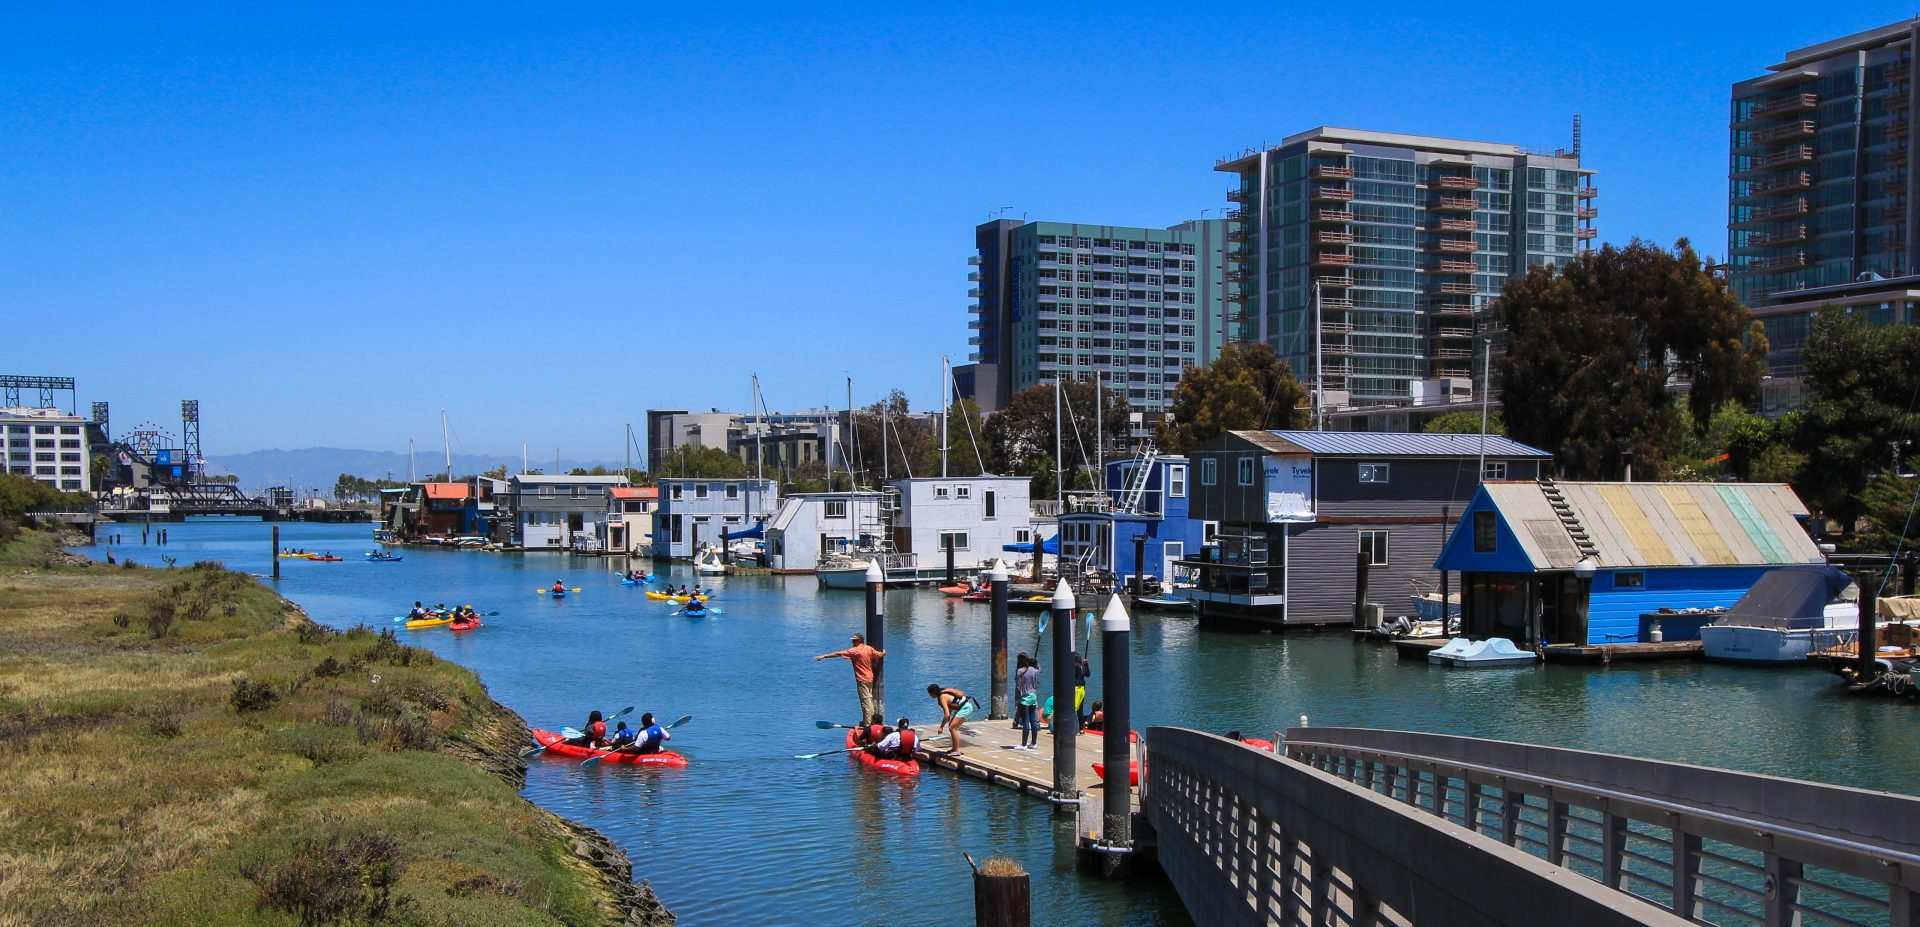 Narrow channel with many color kayaks, and grassy meadow on left and houseboats on right. A ramp descends to a floating dock with 4 people standing on it